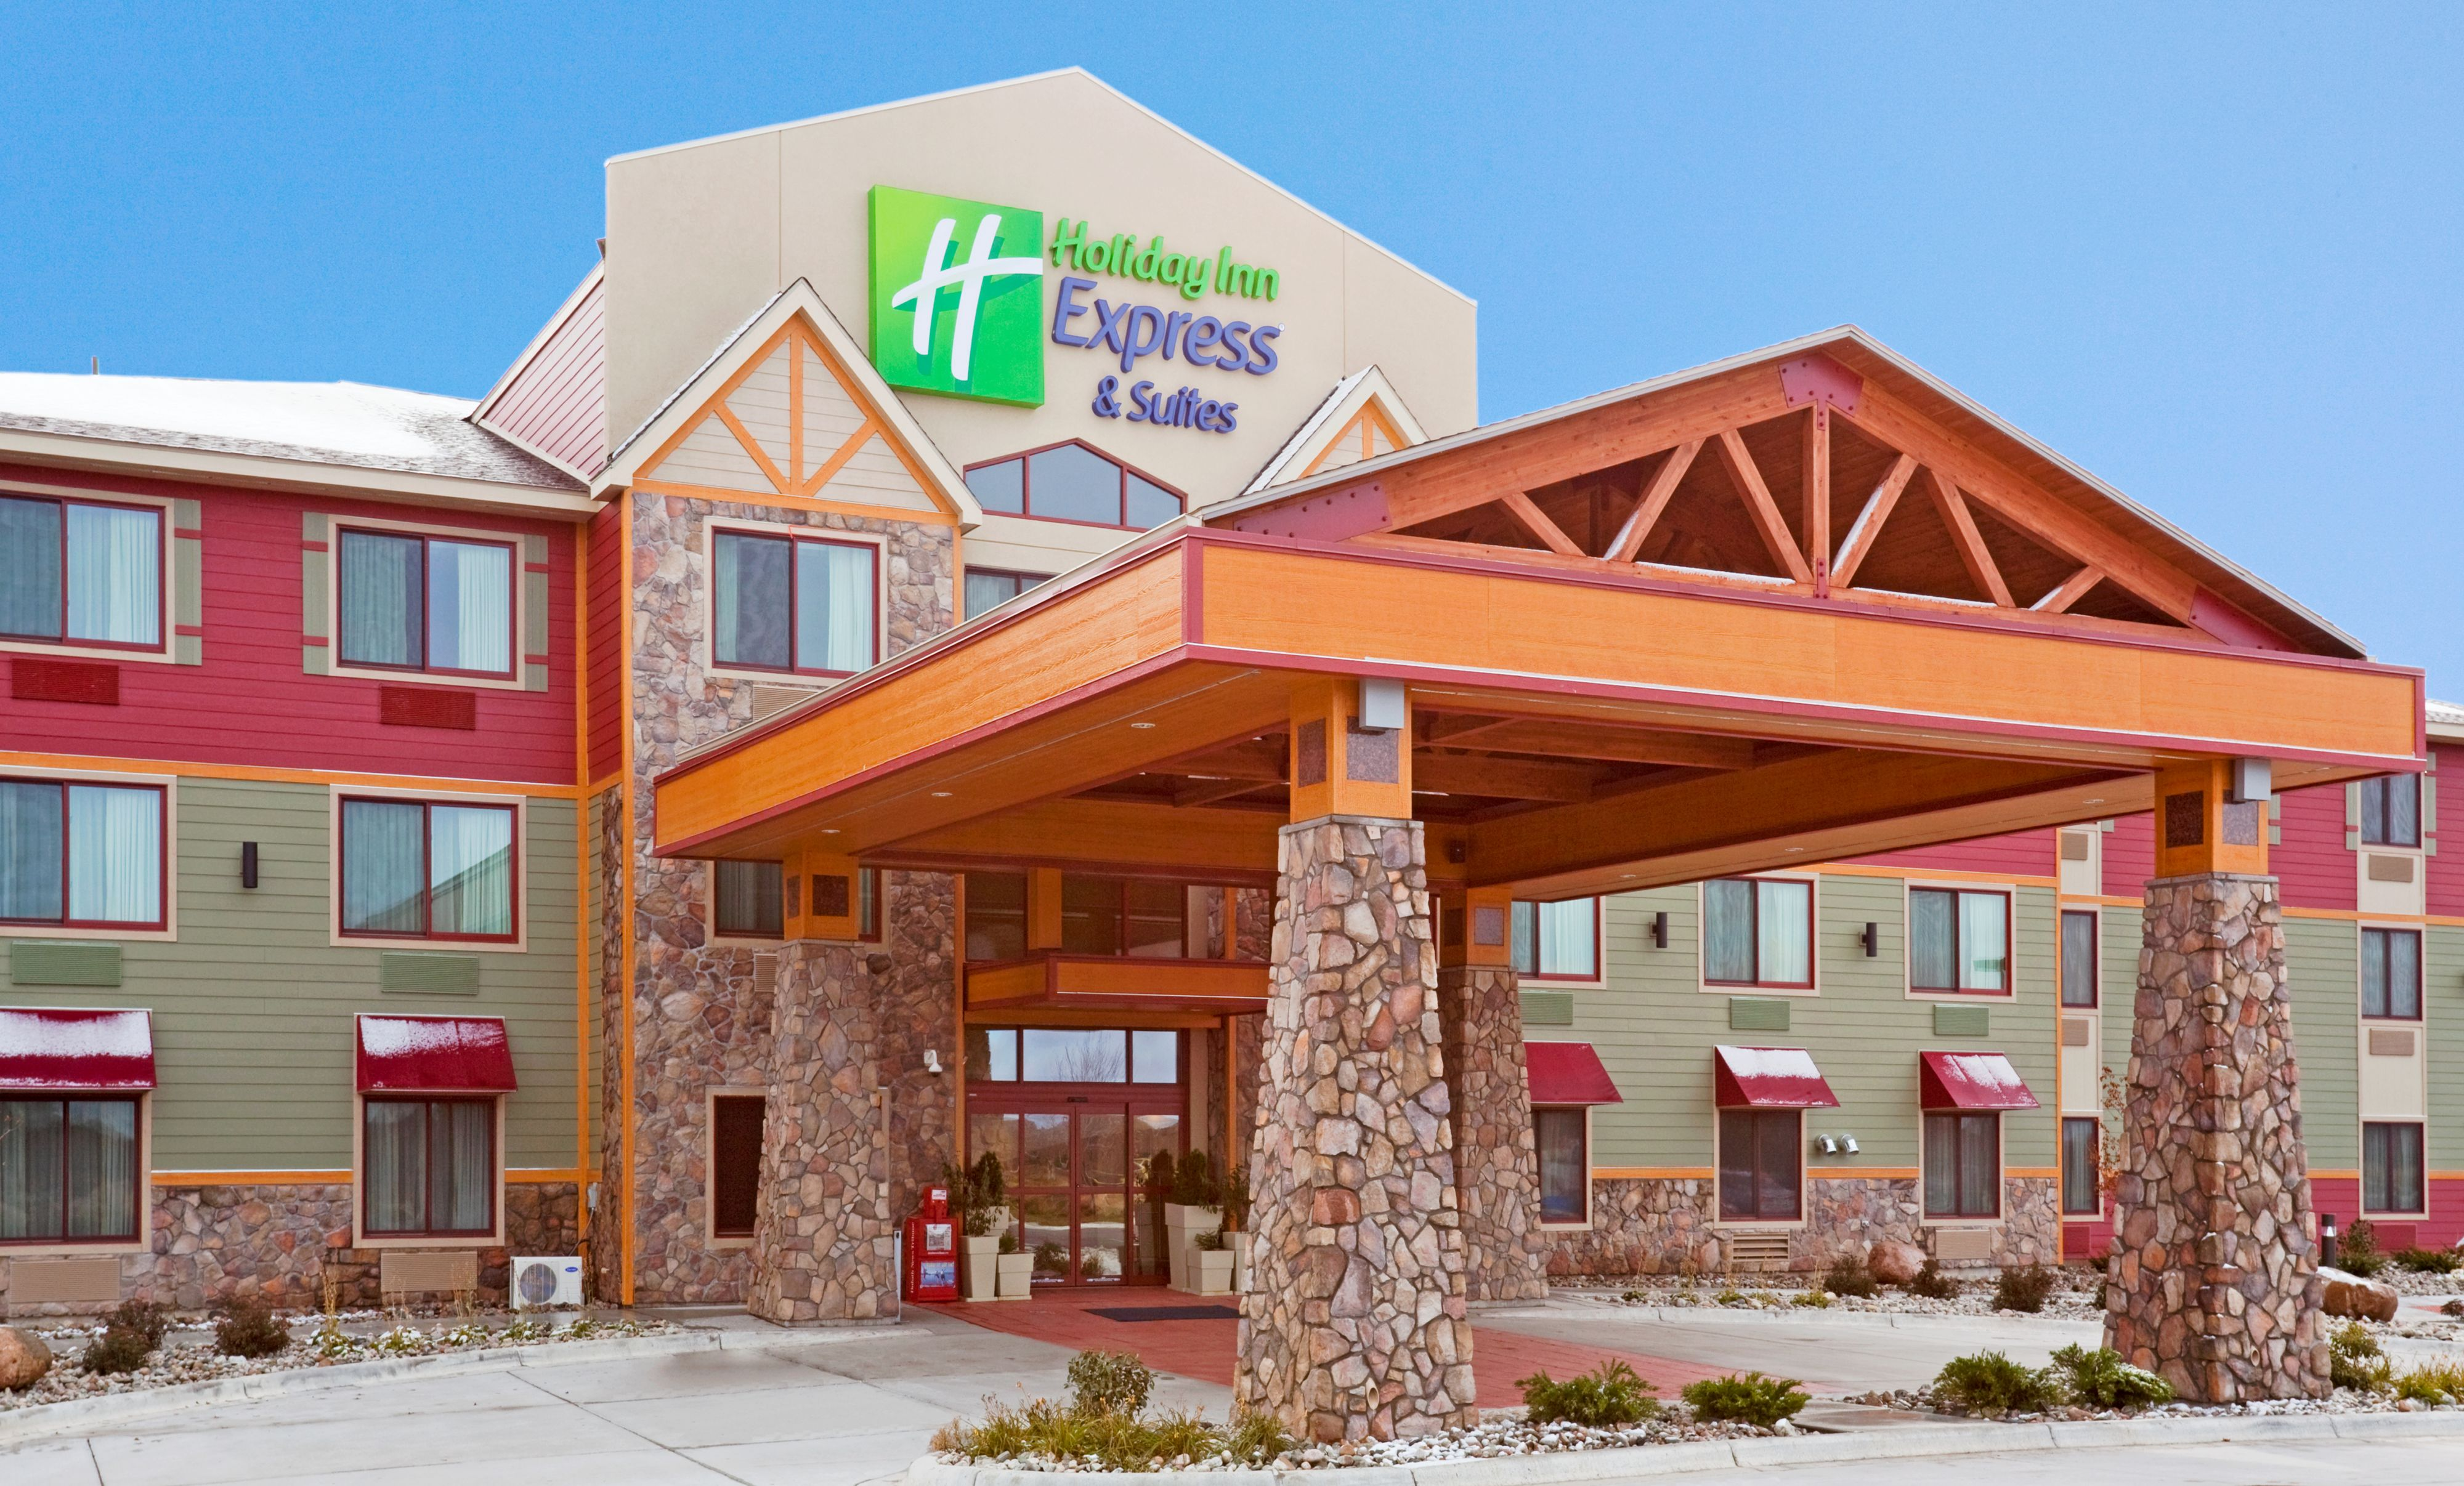 Holiday Inn Express & Suites Mount Pleasant image 3